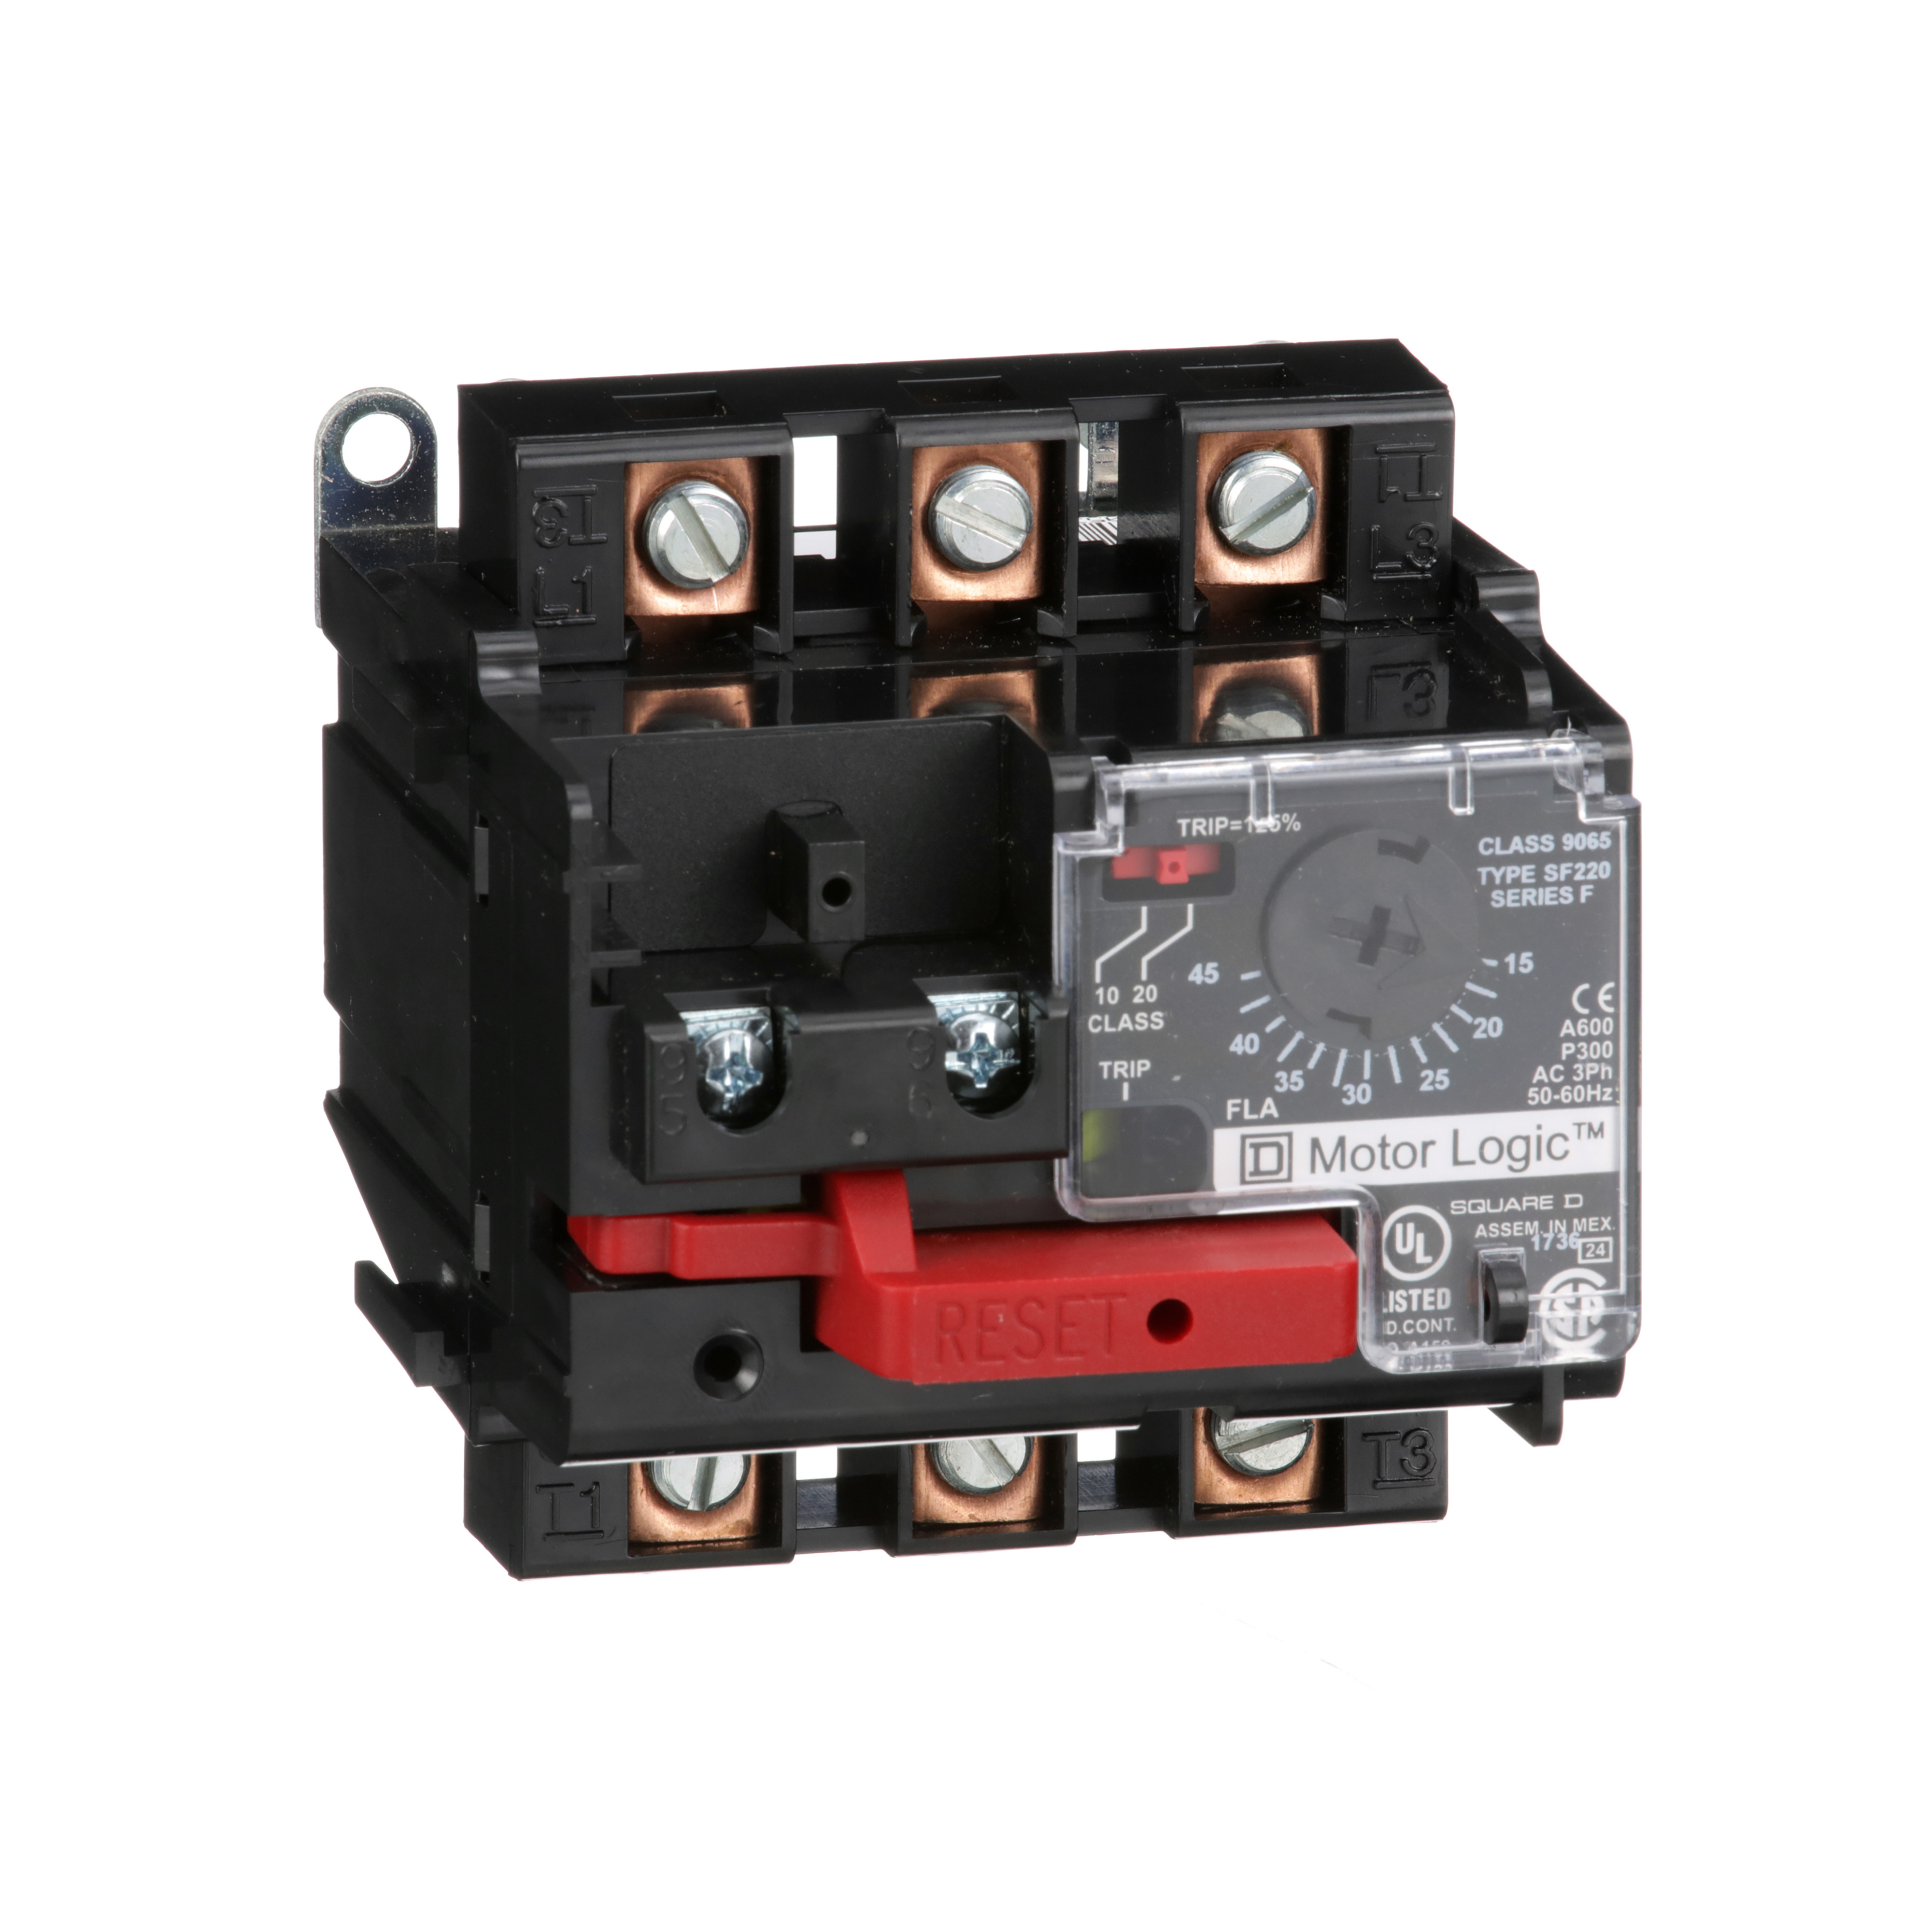 SQUARE D Motor Logic solid state overload relay, separate mount, NEMA Size 2, 15 to 45 A, 600 VAC